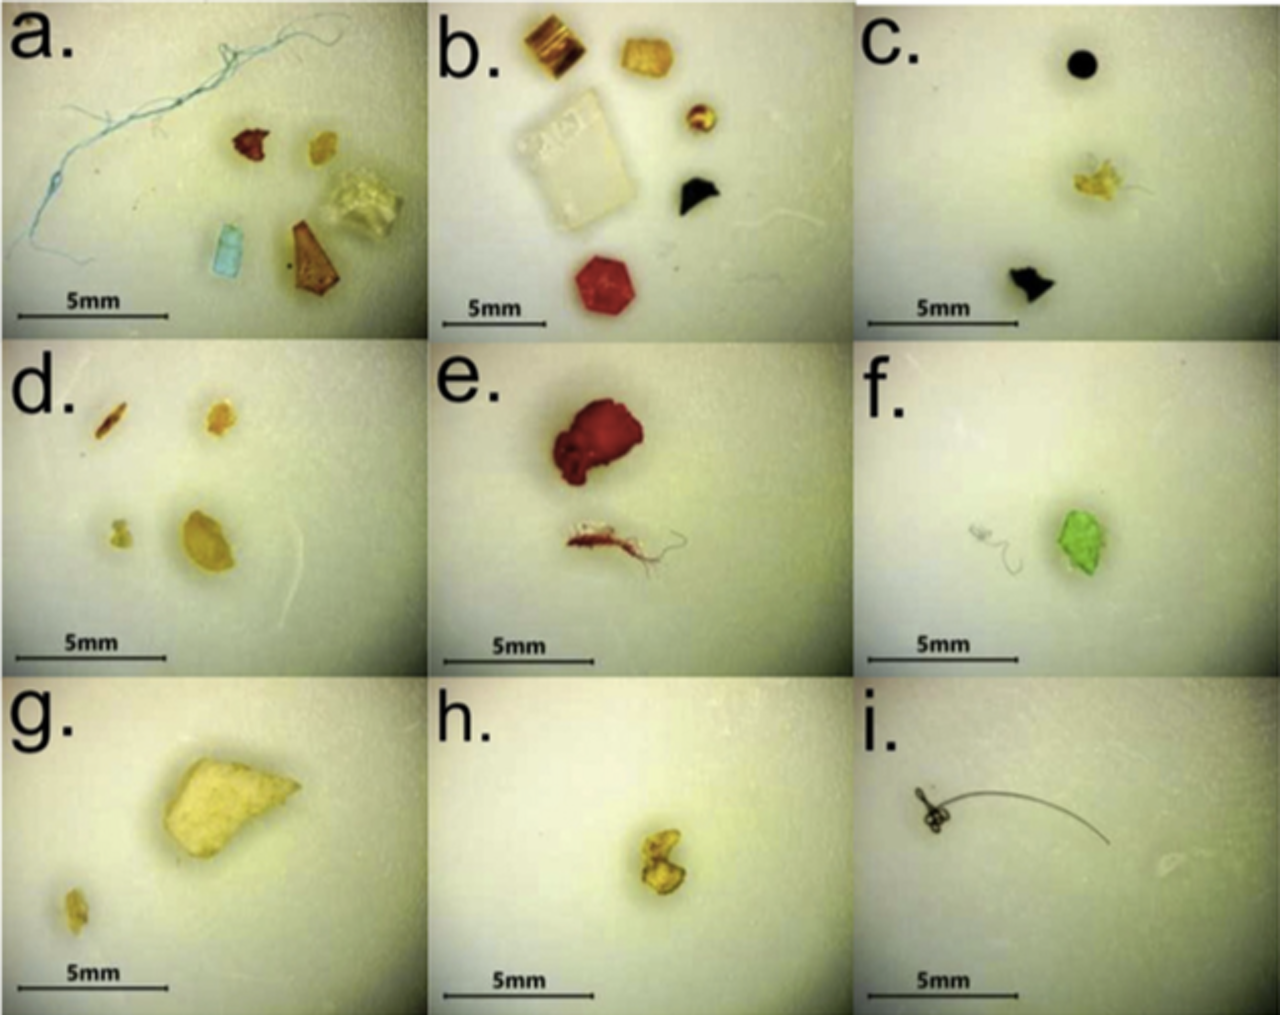 Samples of microplastics found at nine different beach locaitons along the Northern Gulf of Mexico coastline.